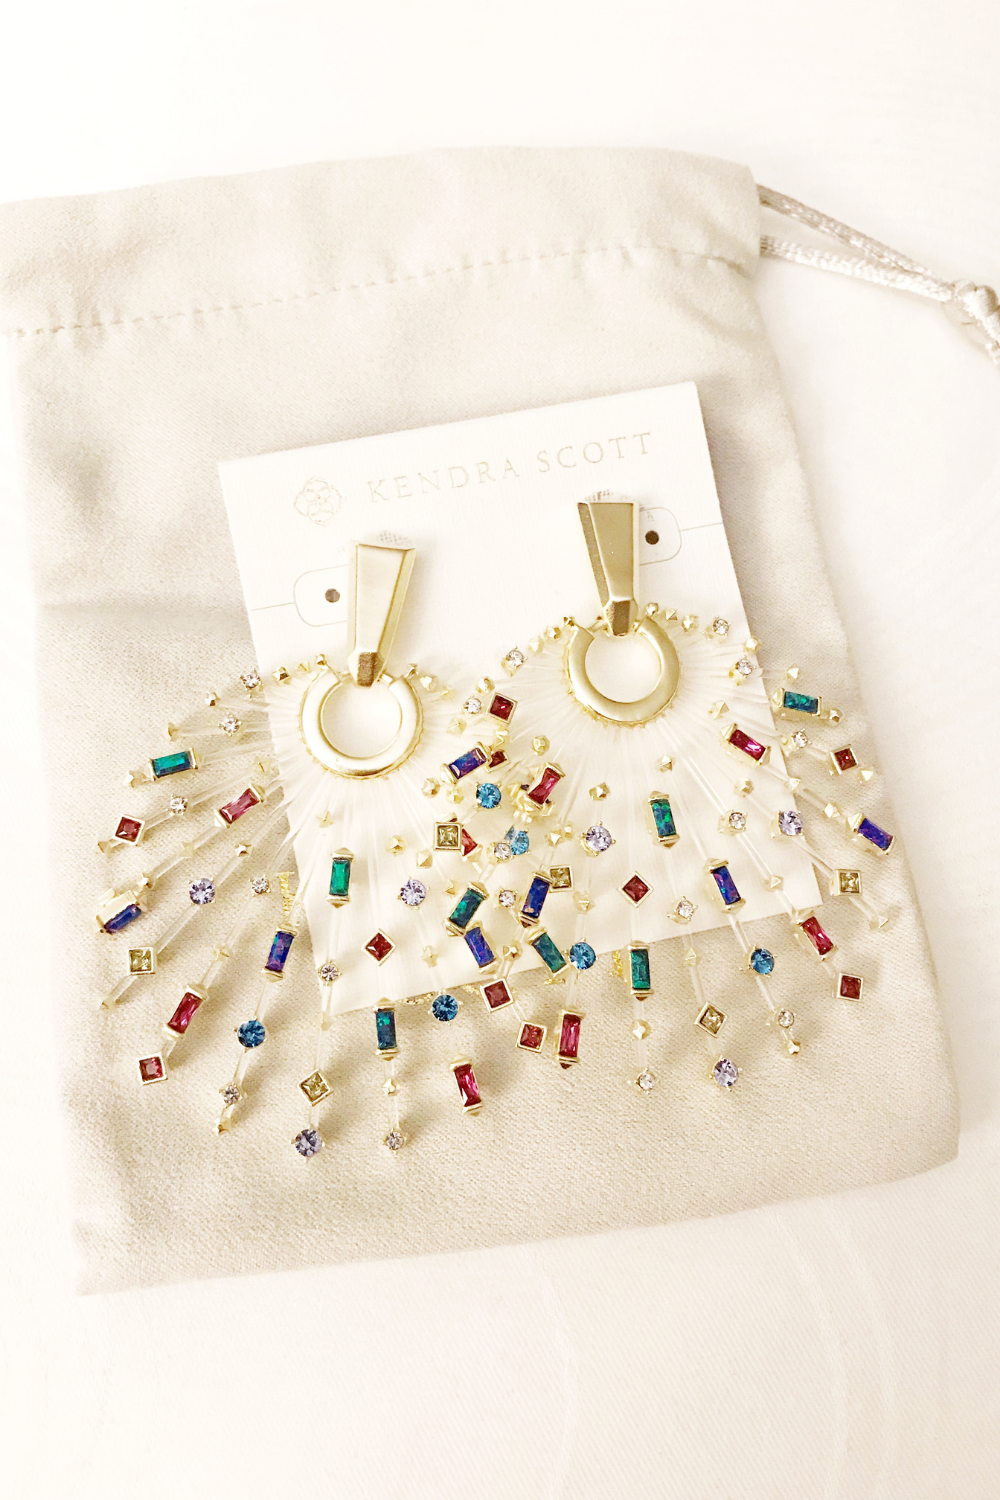 Friday Favorites - Kendra Scott earrings